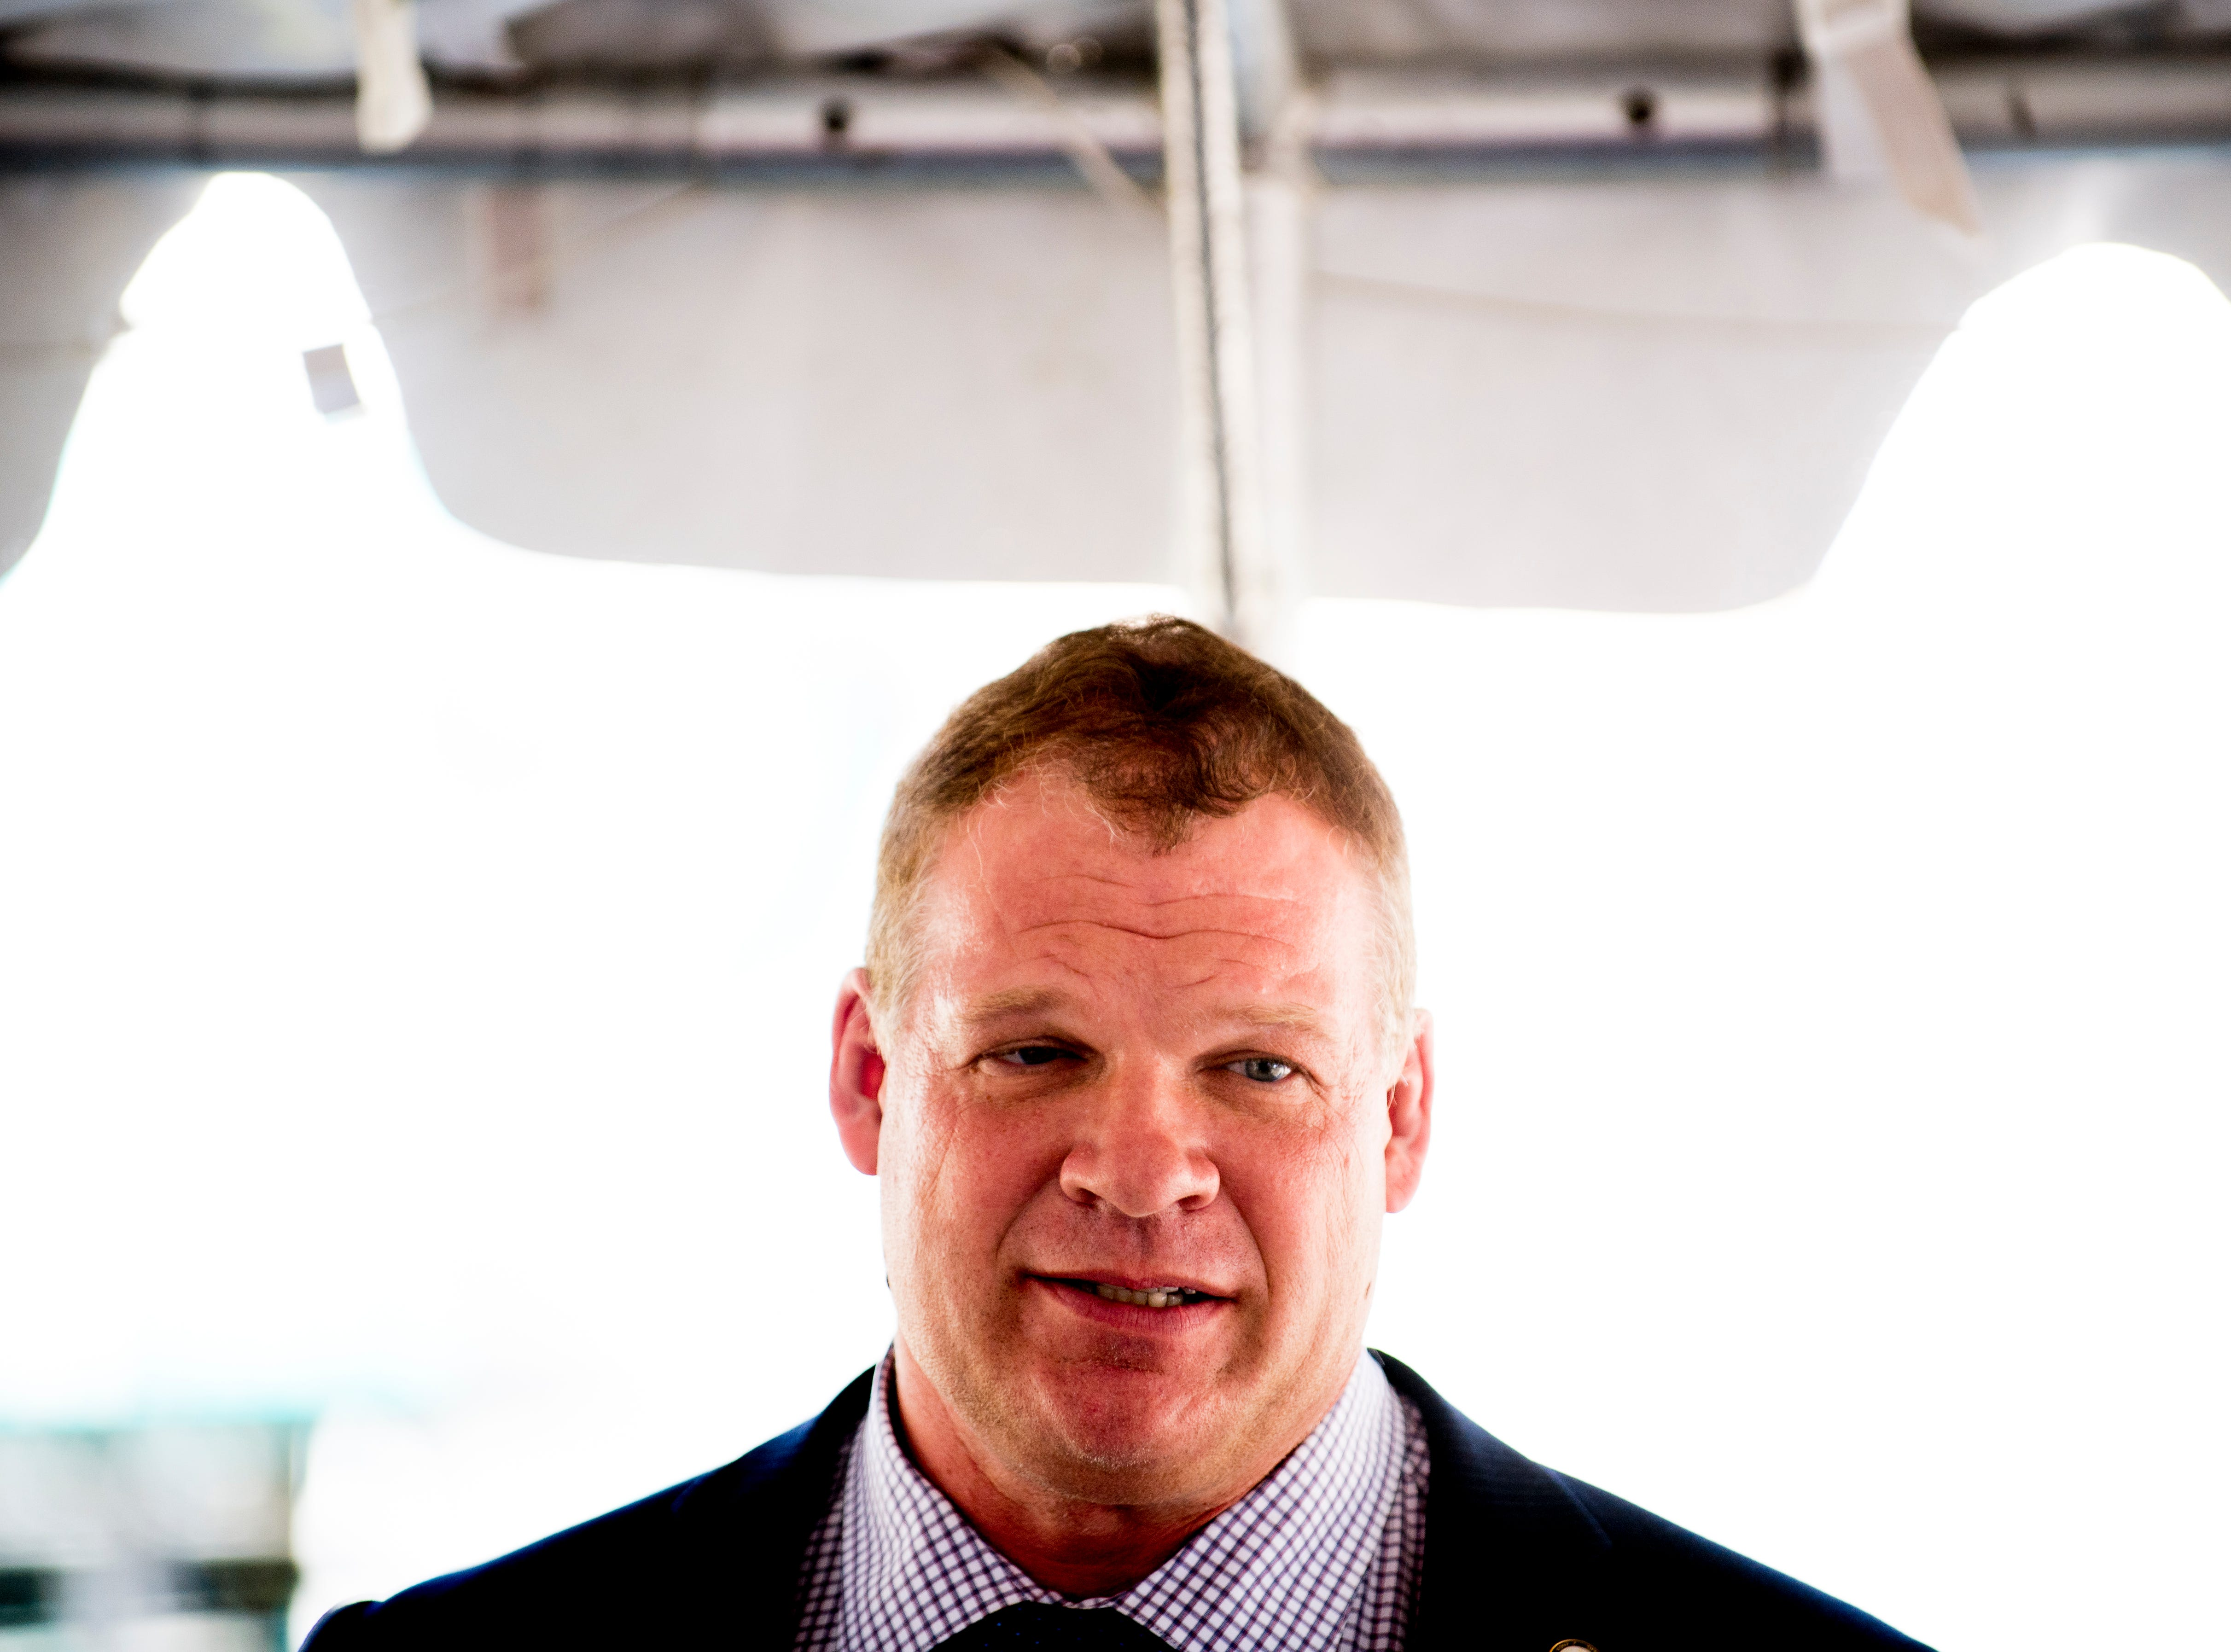 Knox County Mayor Glenn Jacobs speaks during the Five Points Phase 2 ribbon-cutting ceremony in Knoxville on Wednesday, Sept. 19, 2018.